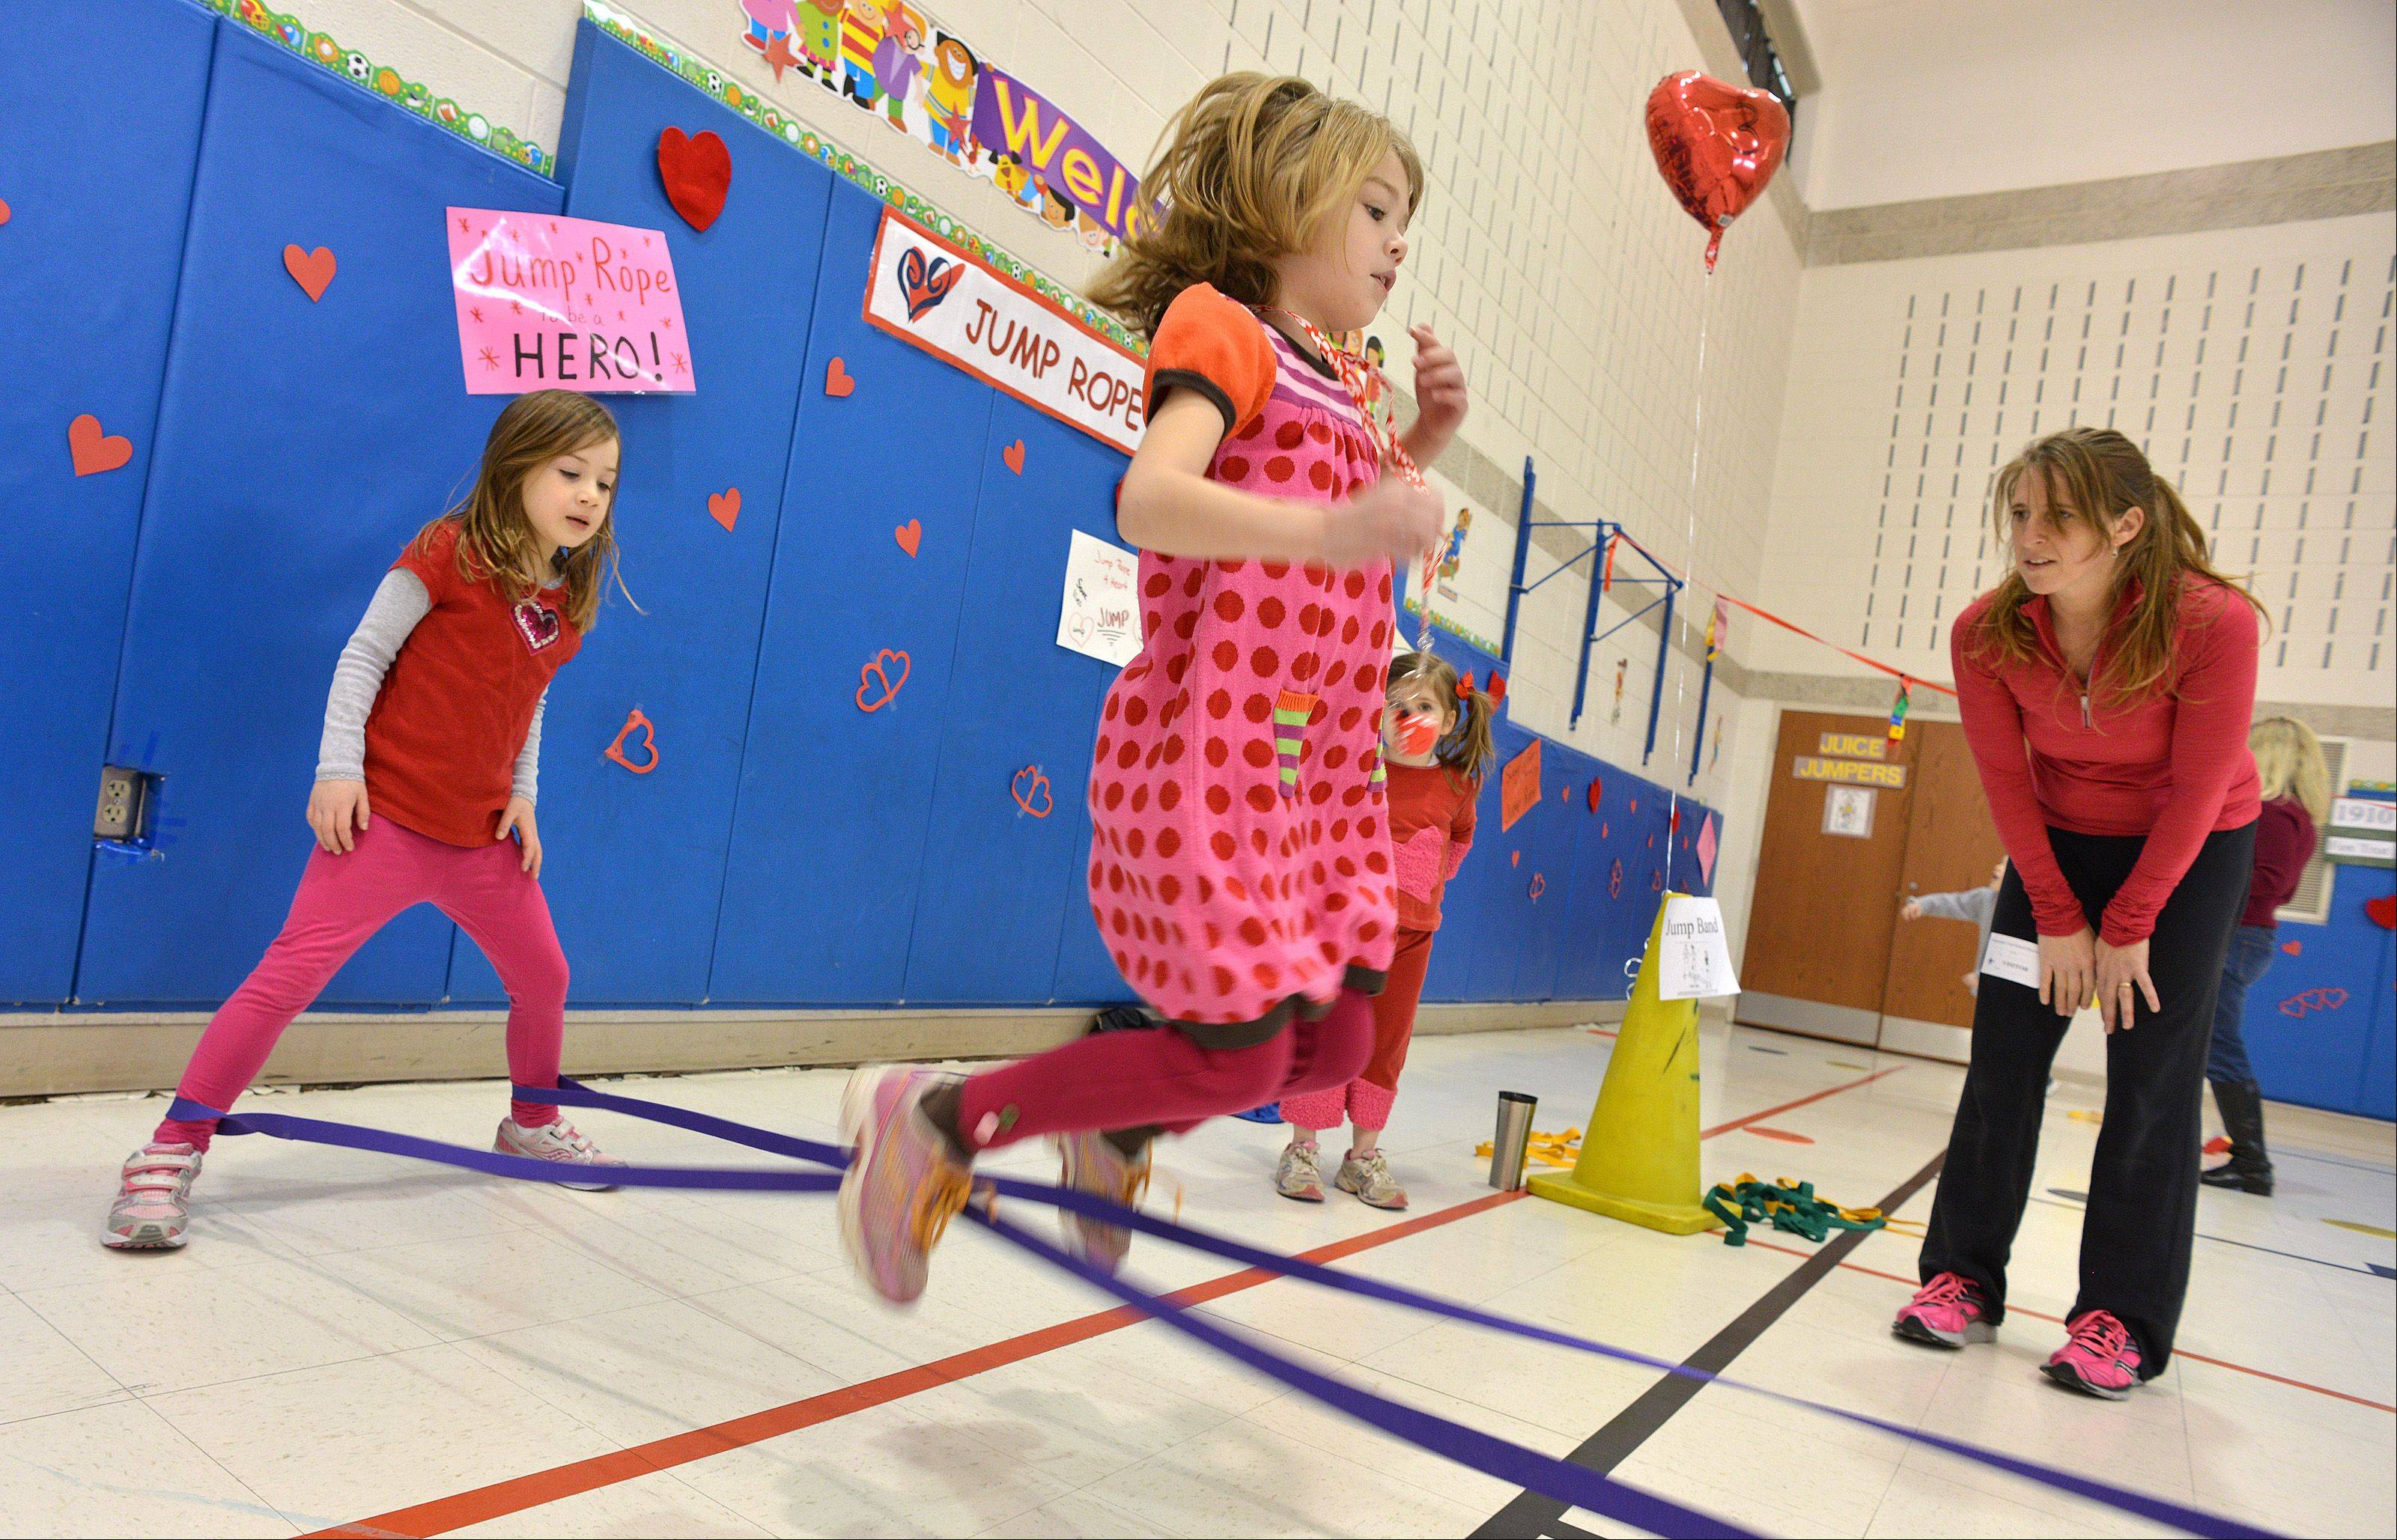 Avery Palmore, center, hops through a jump band, while Cecilia Marello, left, holds the band, and parent volunteer Theresa Ferguson watches. Students at Longfellow School in Wheaton were jumping around Friday in gym classes to raise money for the American Heart Association's Jump Rope for Heart program.